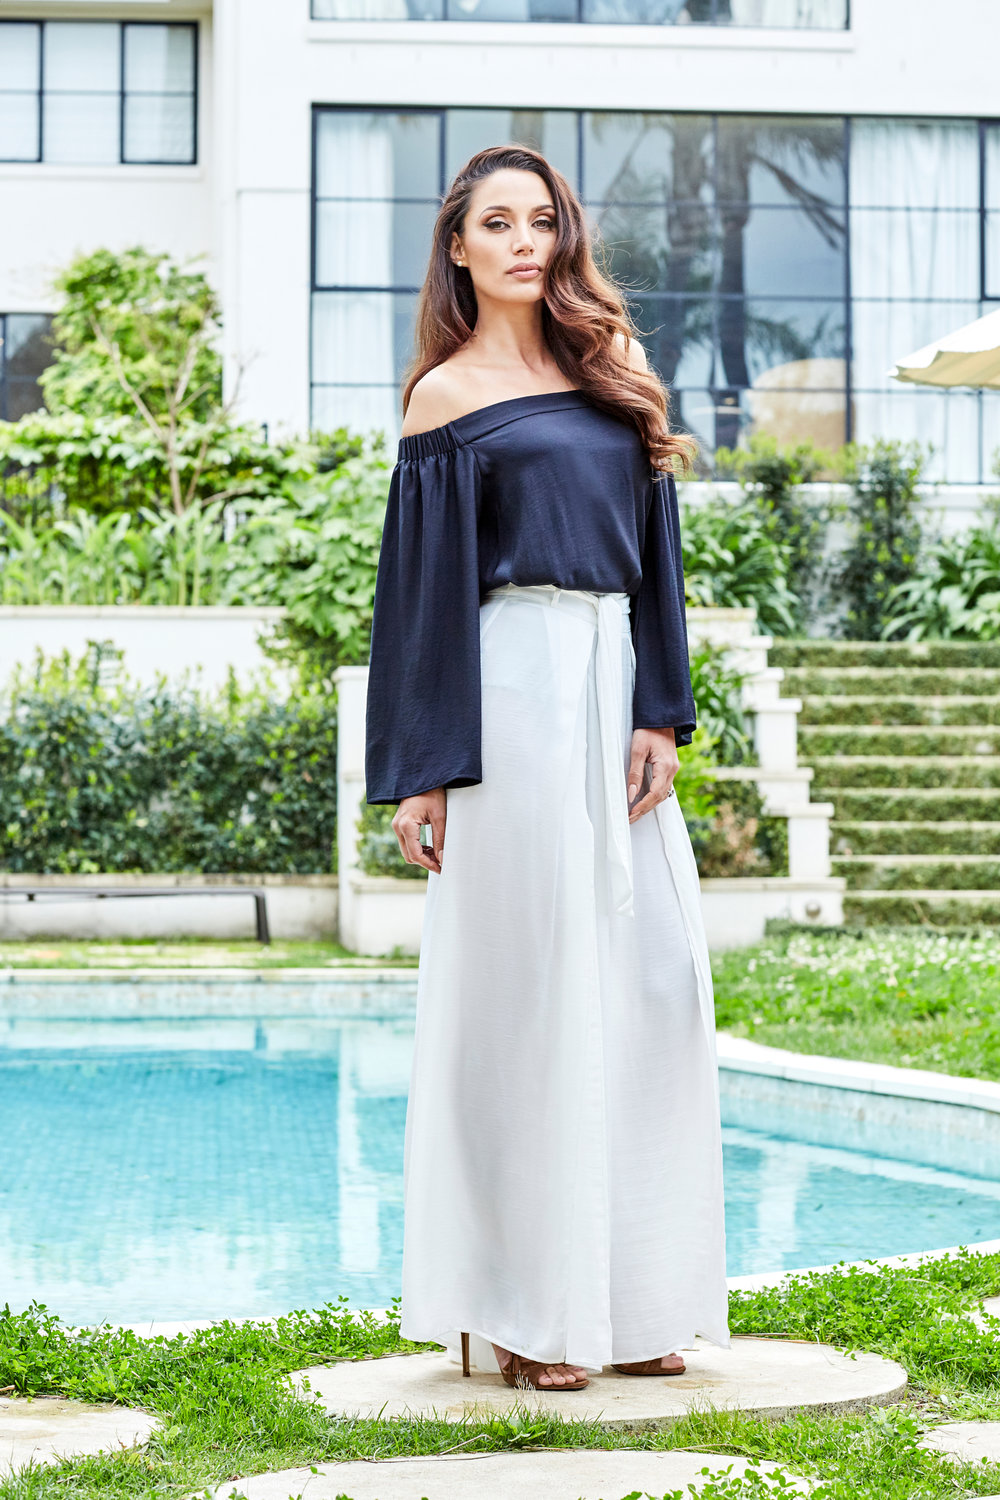 Eve Top in black $119.95 | Eve Pant in white $149.95  This outfit is perfect for Christmas functions or barbecues on a hot Summer's afternoon.